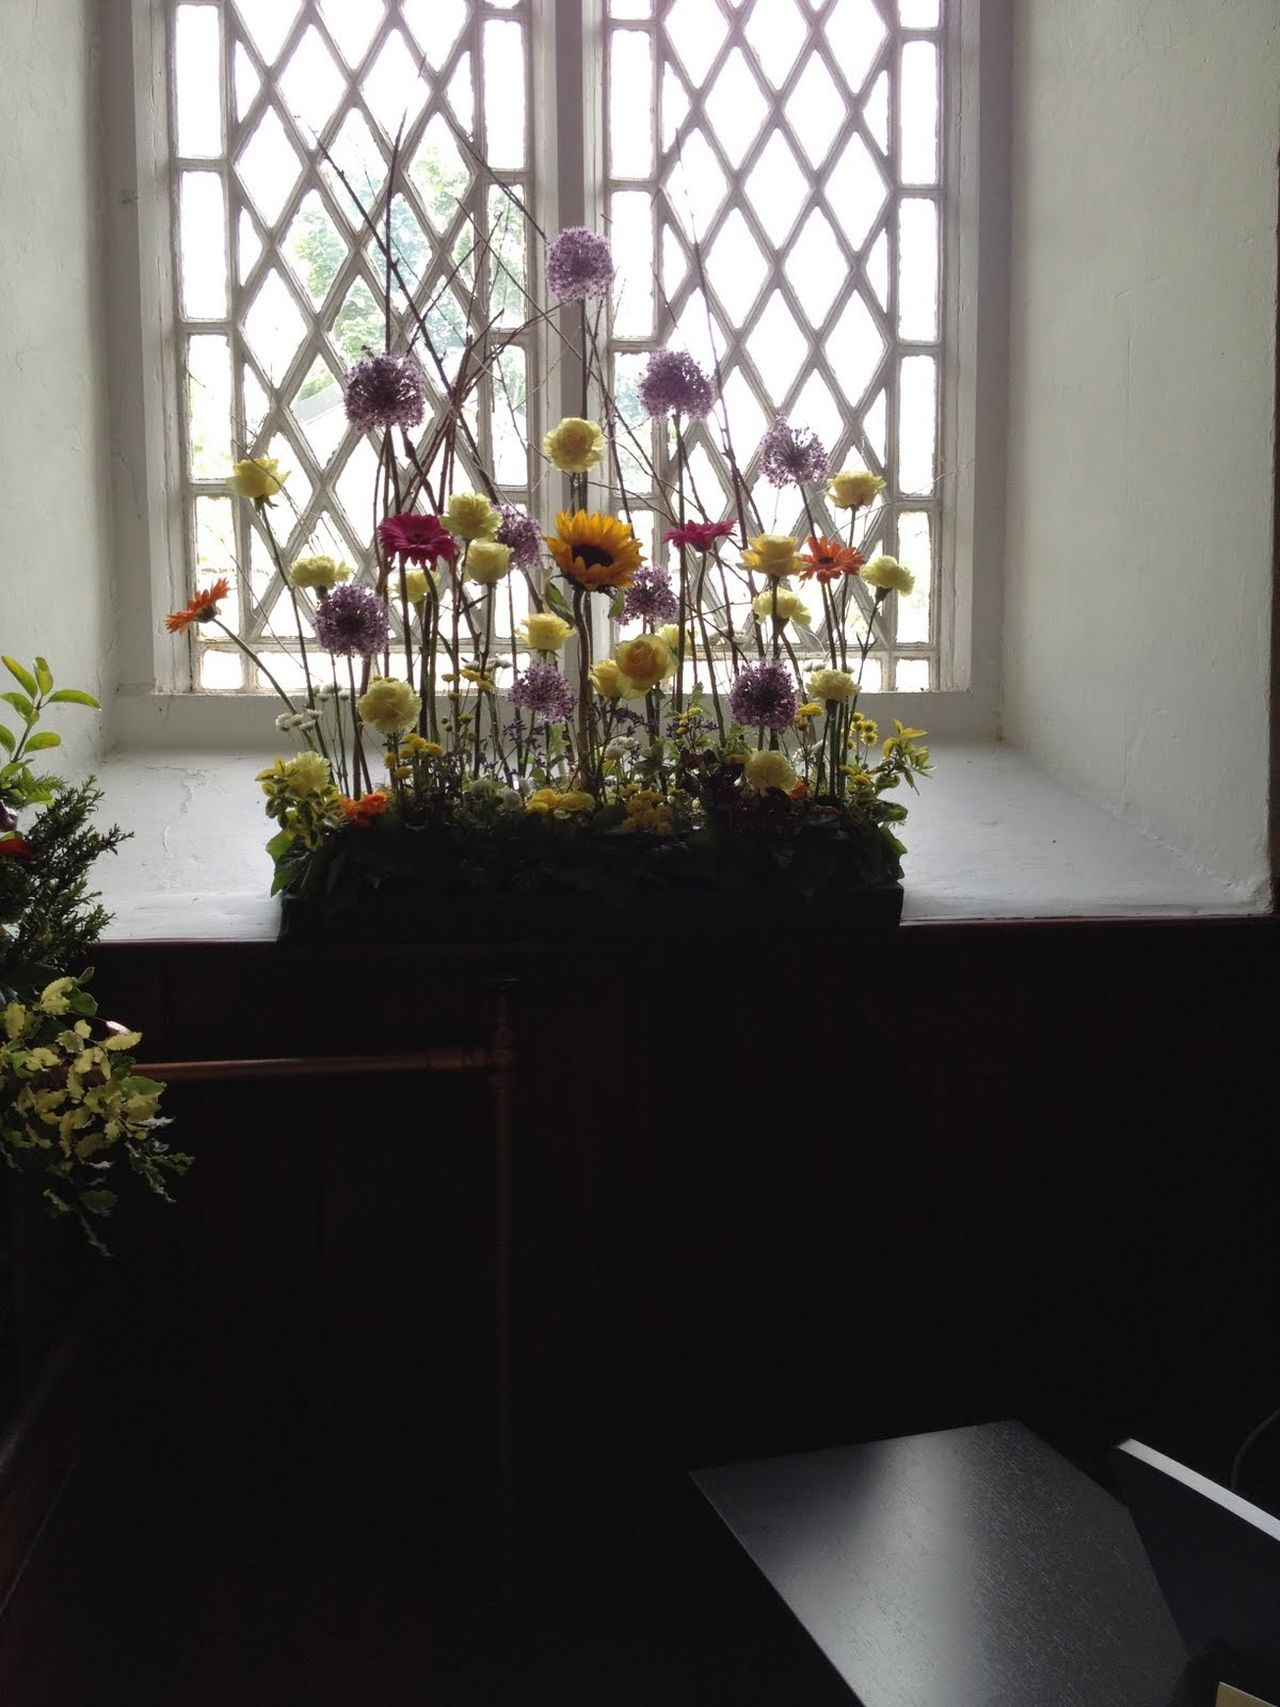 Day Home Interior Indoors  No People Window Flower Arrangement Flowers In Window Church Window Church Window With Floqers Flowers Flower Collection Flower Photography Light And Shadow Shadow And Light